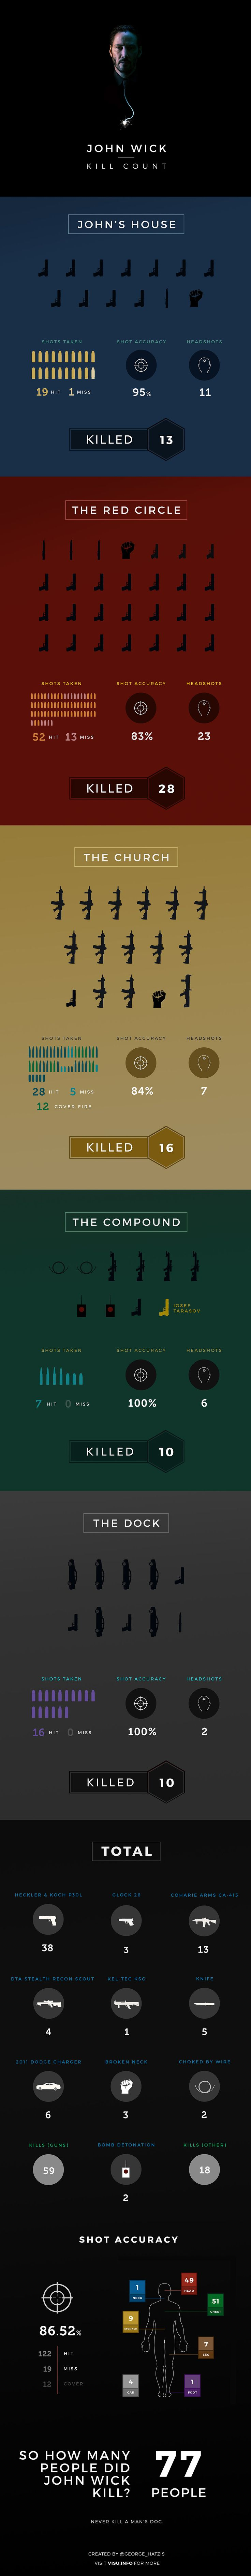 John Wick Kill Count Movie infographic. Topic: film, keanu reeves